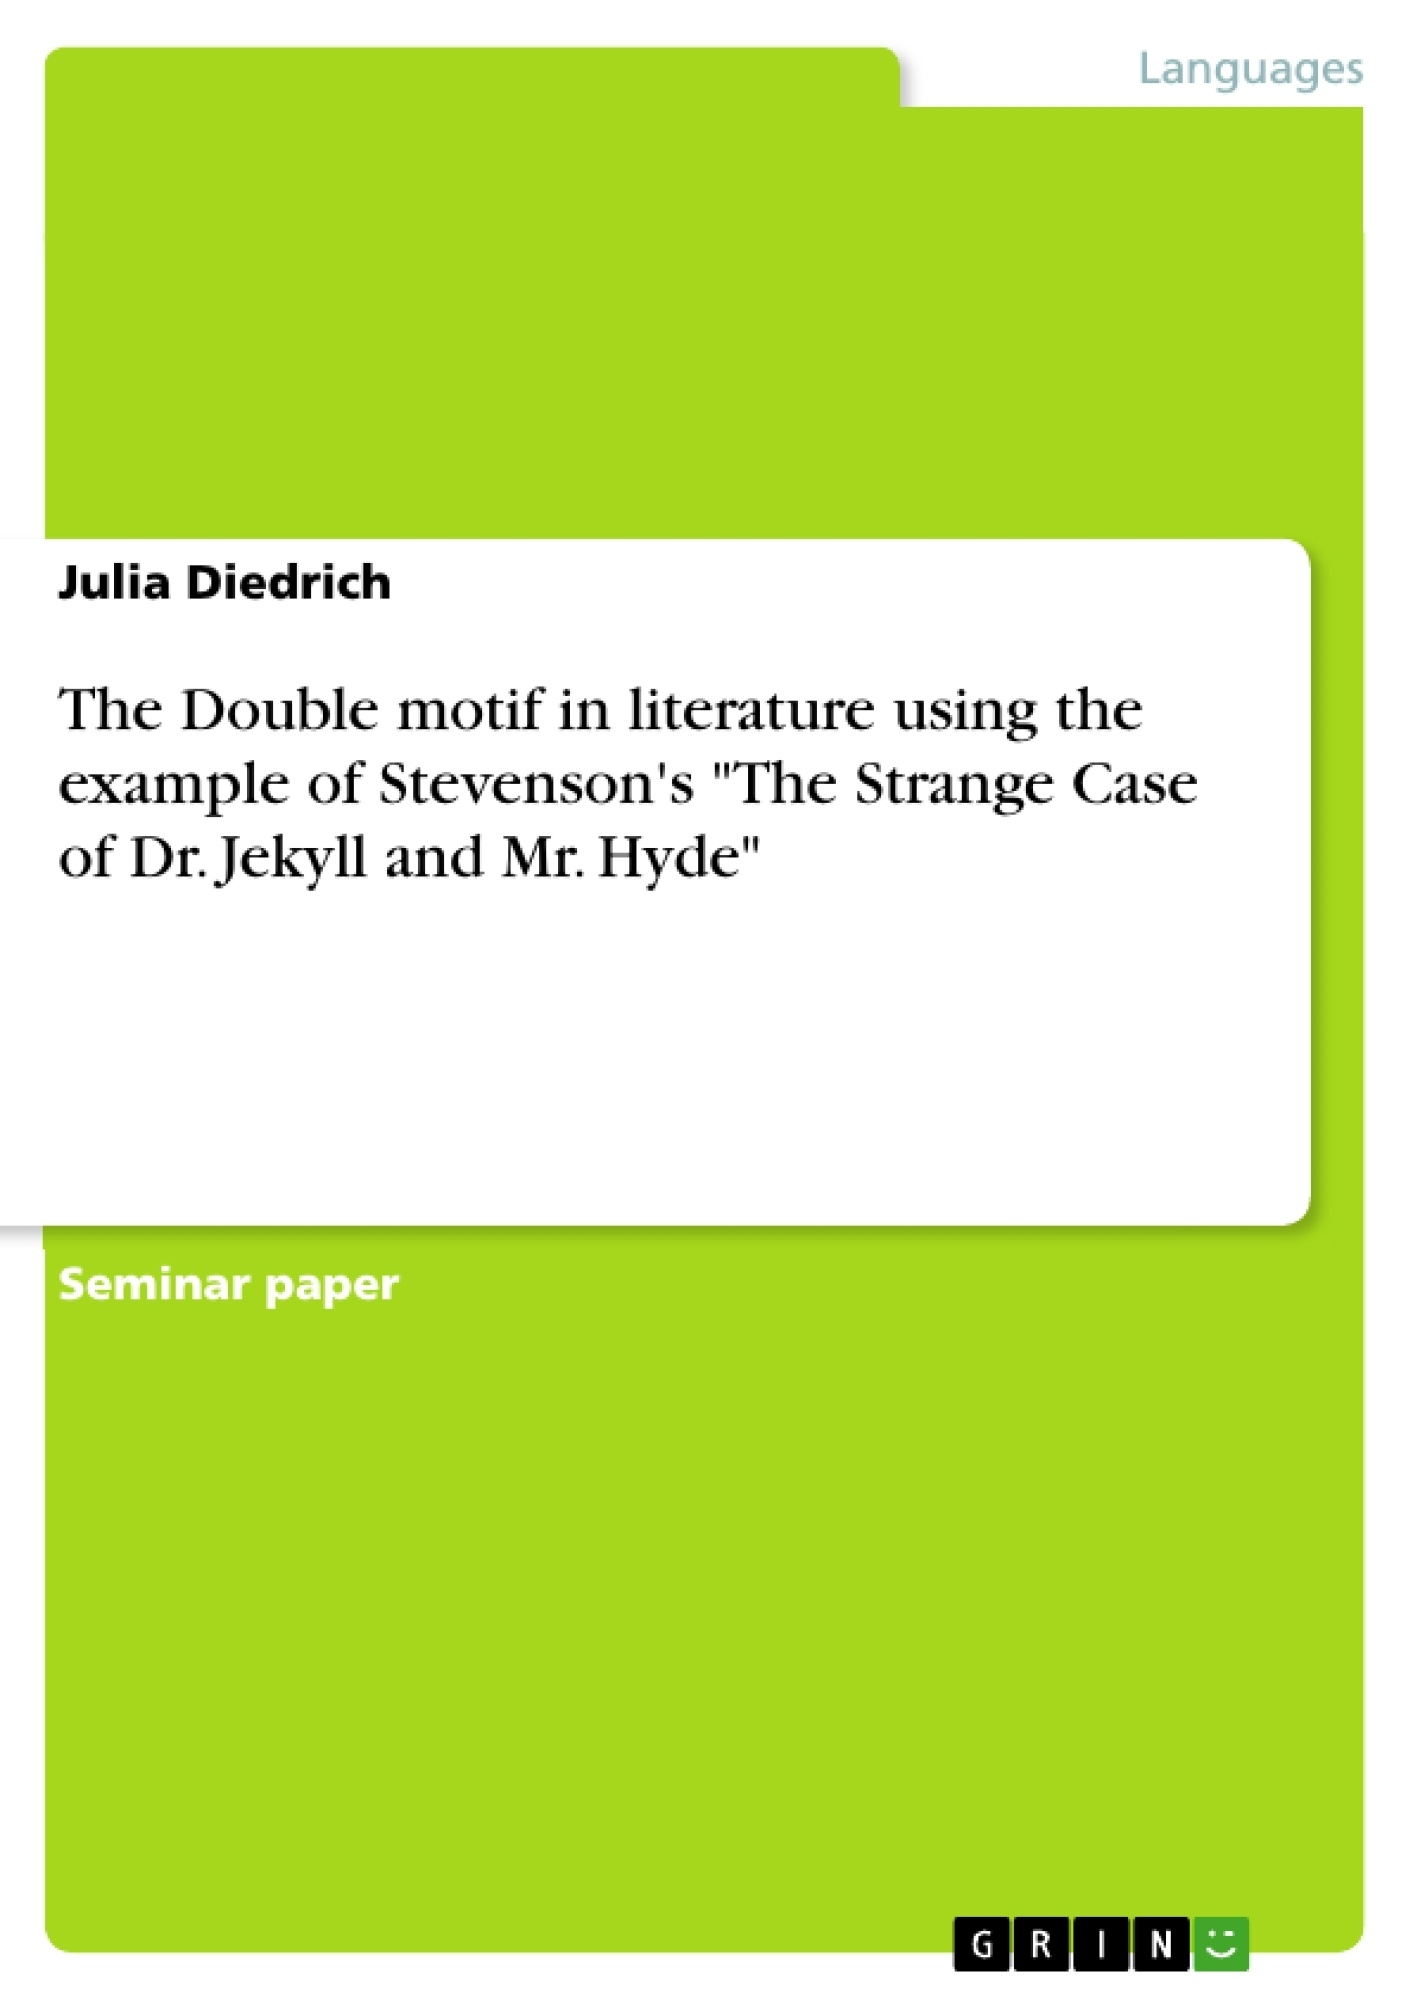 """Title: The Double motif in literature using the example of Stevenson's """"The Strange Case of Dr. Jekyll and Mr. Hyde"""""""